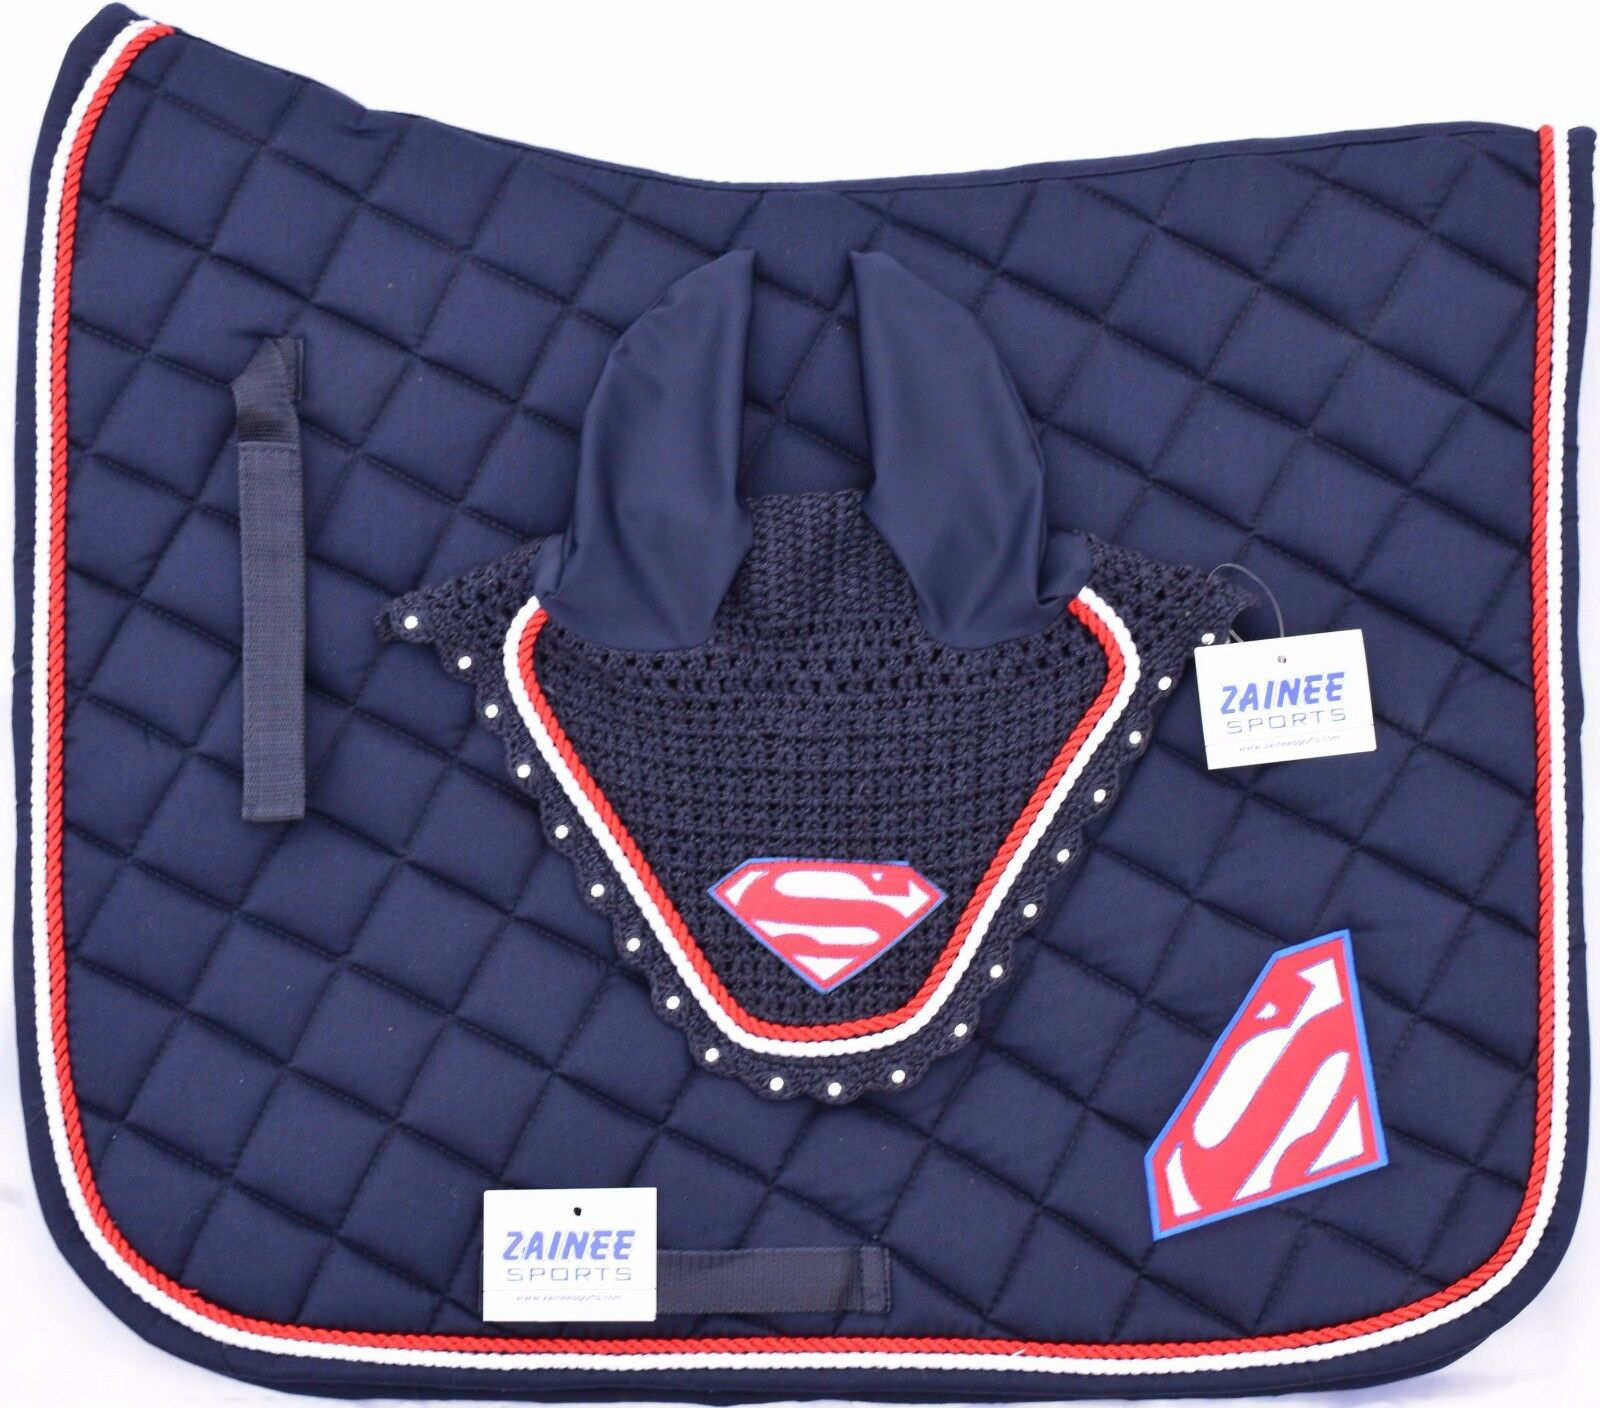 SUPER MAN SADDLE PAD SET FLY VEIL HORSE BONNET DIAMANTE EQUESTRIAN ZAINEE SPORTS